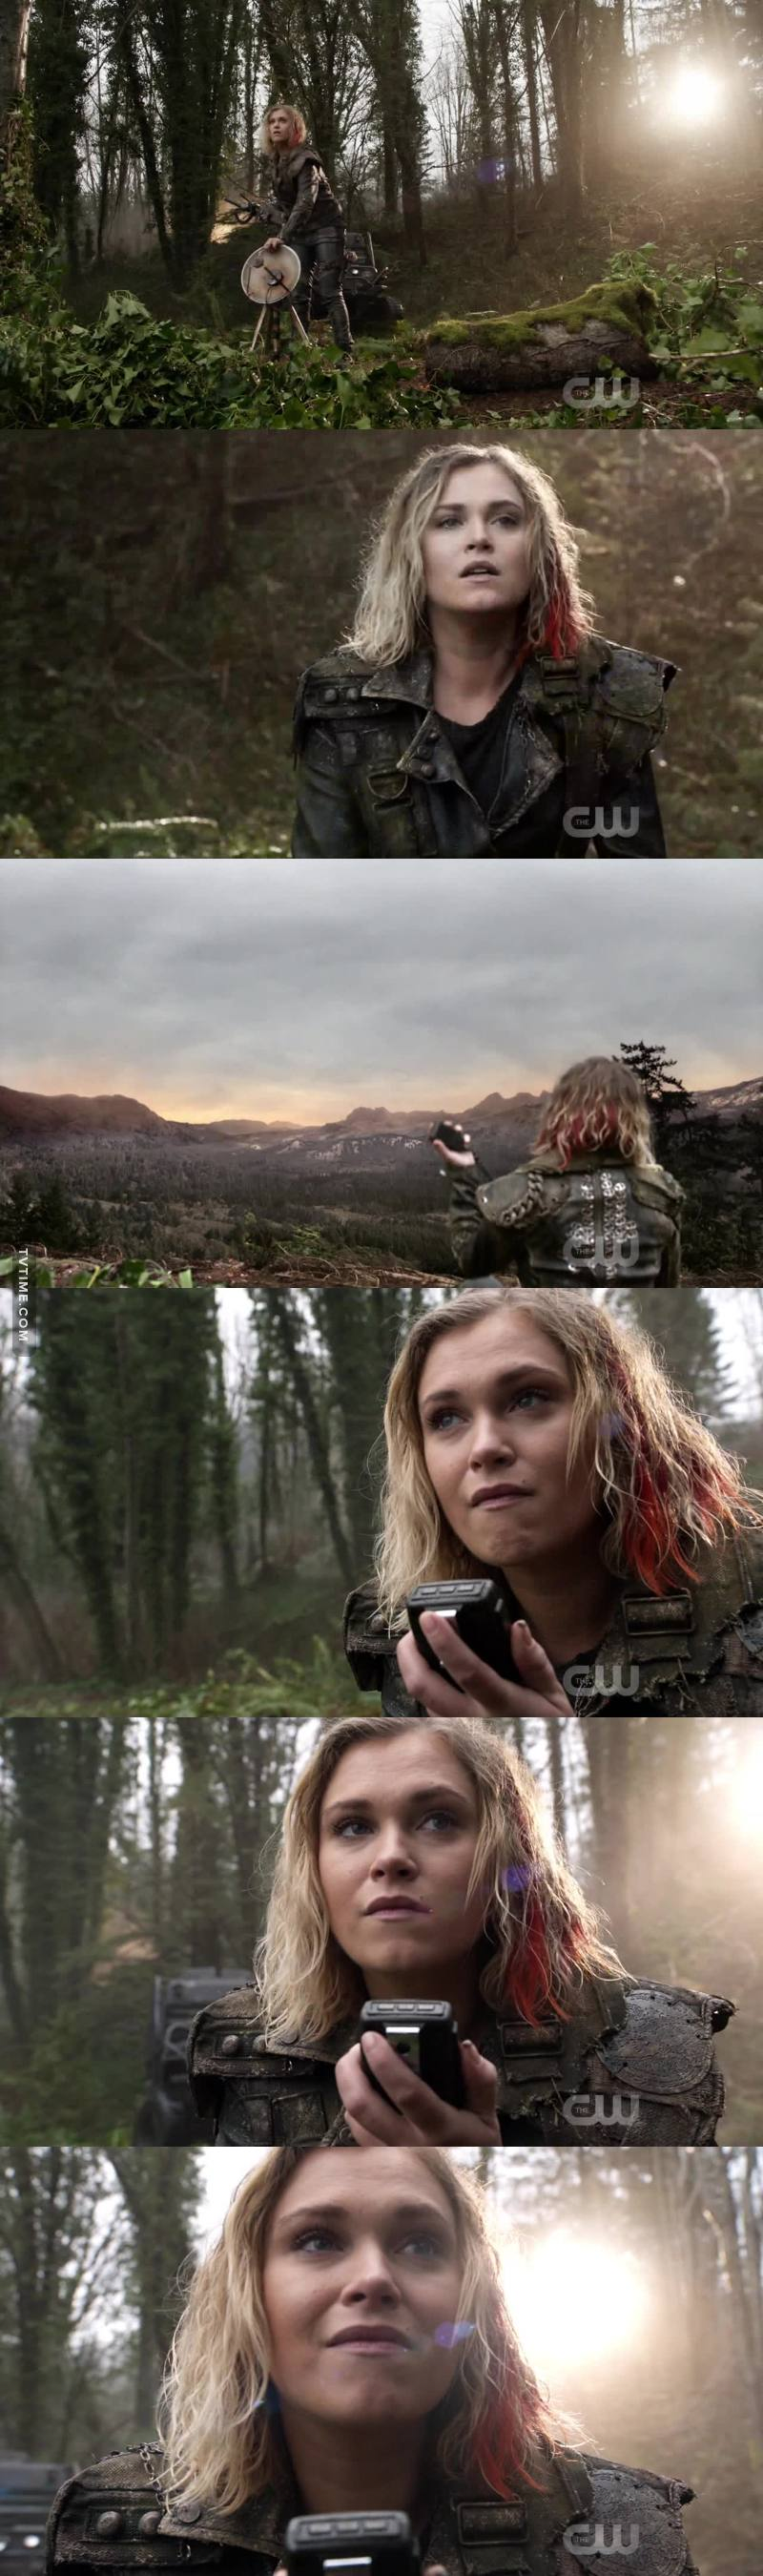 SHE TRIED TO CONTACT BELLAMY FOR 6 YEARS, 6 YEARS.